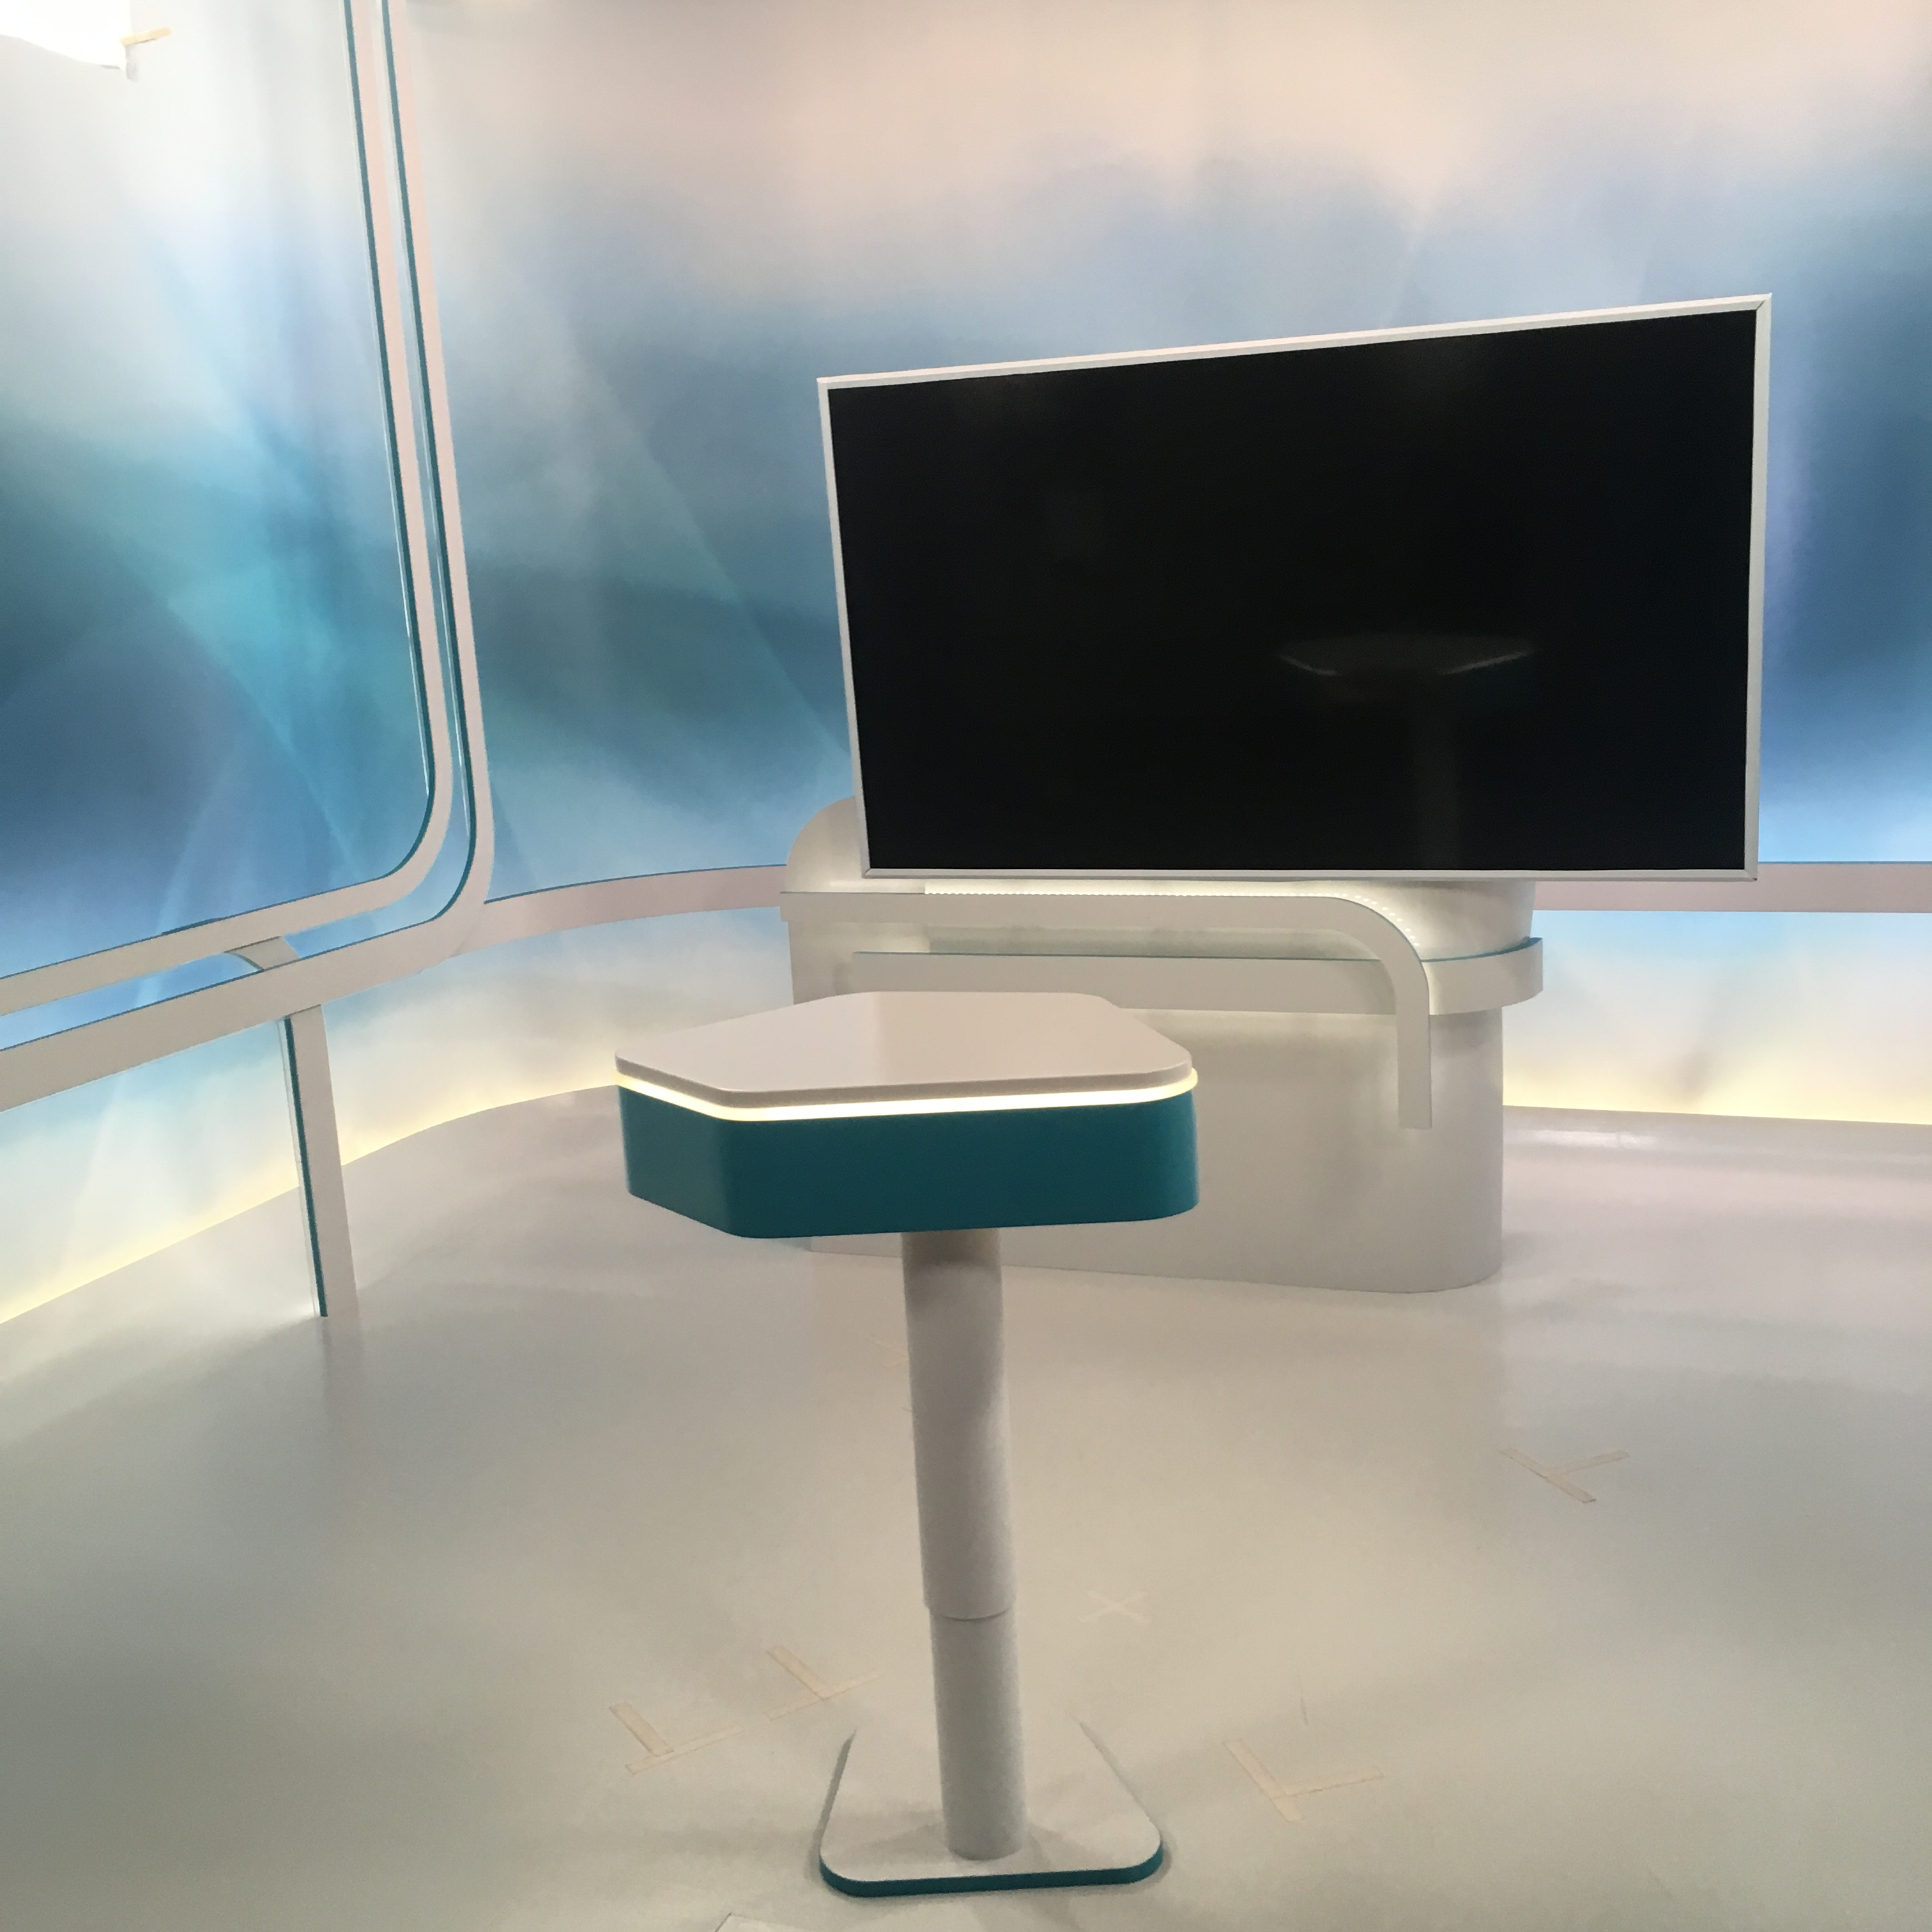 yle news studio tampere finland